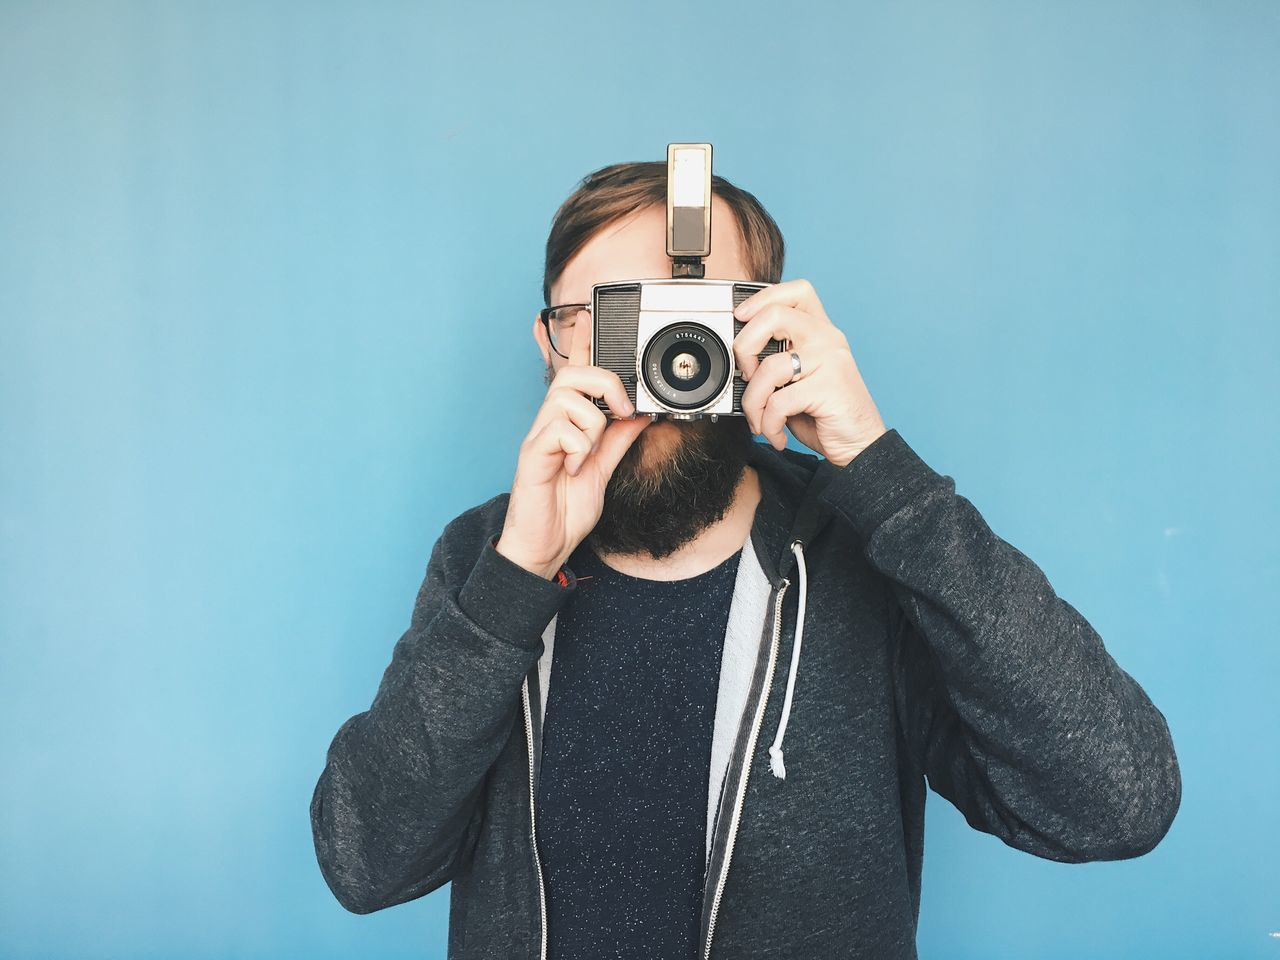 Camera - Photographic Equipment Photography Themes Holding One Person Photographing Old-fashioned Casual Clothing Looking Through An Object Technology Photographer Young Adult Portrait Analogue Photography